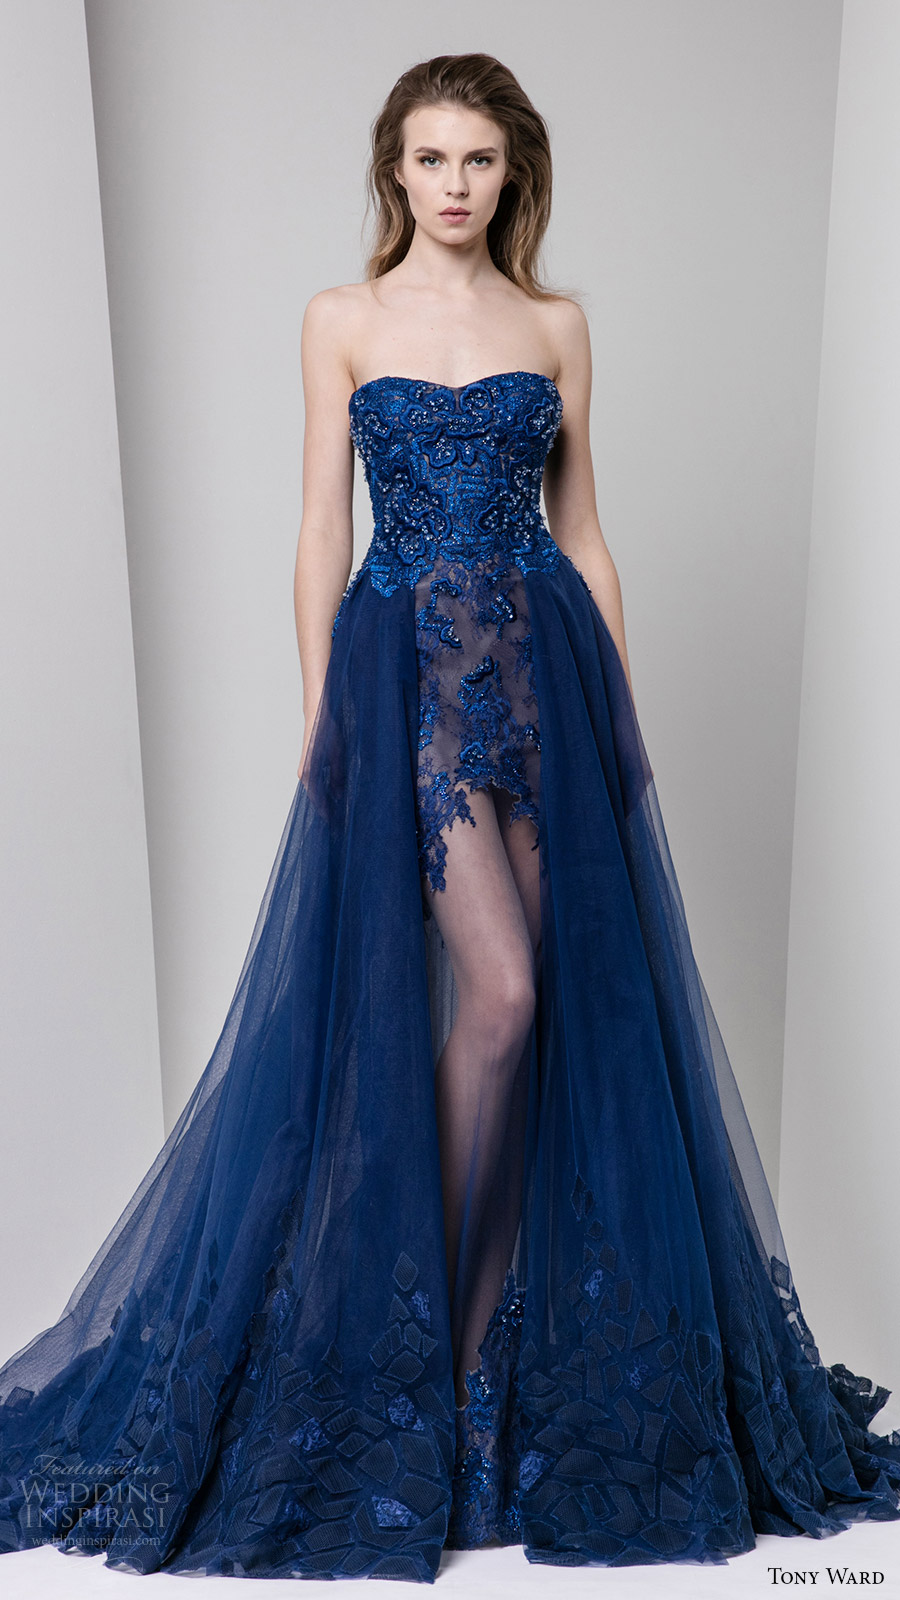 tony ward fall winter 2016 2017 rtw strapless semi sweetheart embellished bodice a line evening dress illusion skirt overskirt blue color